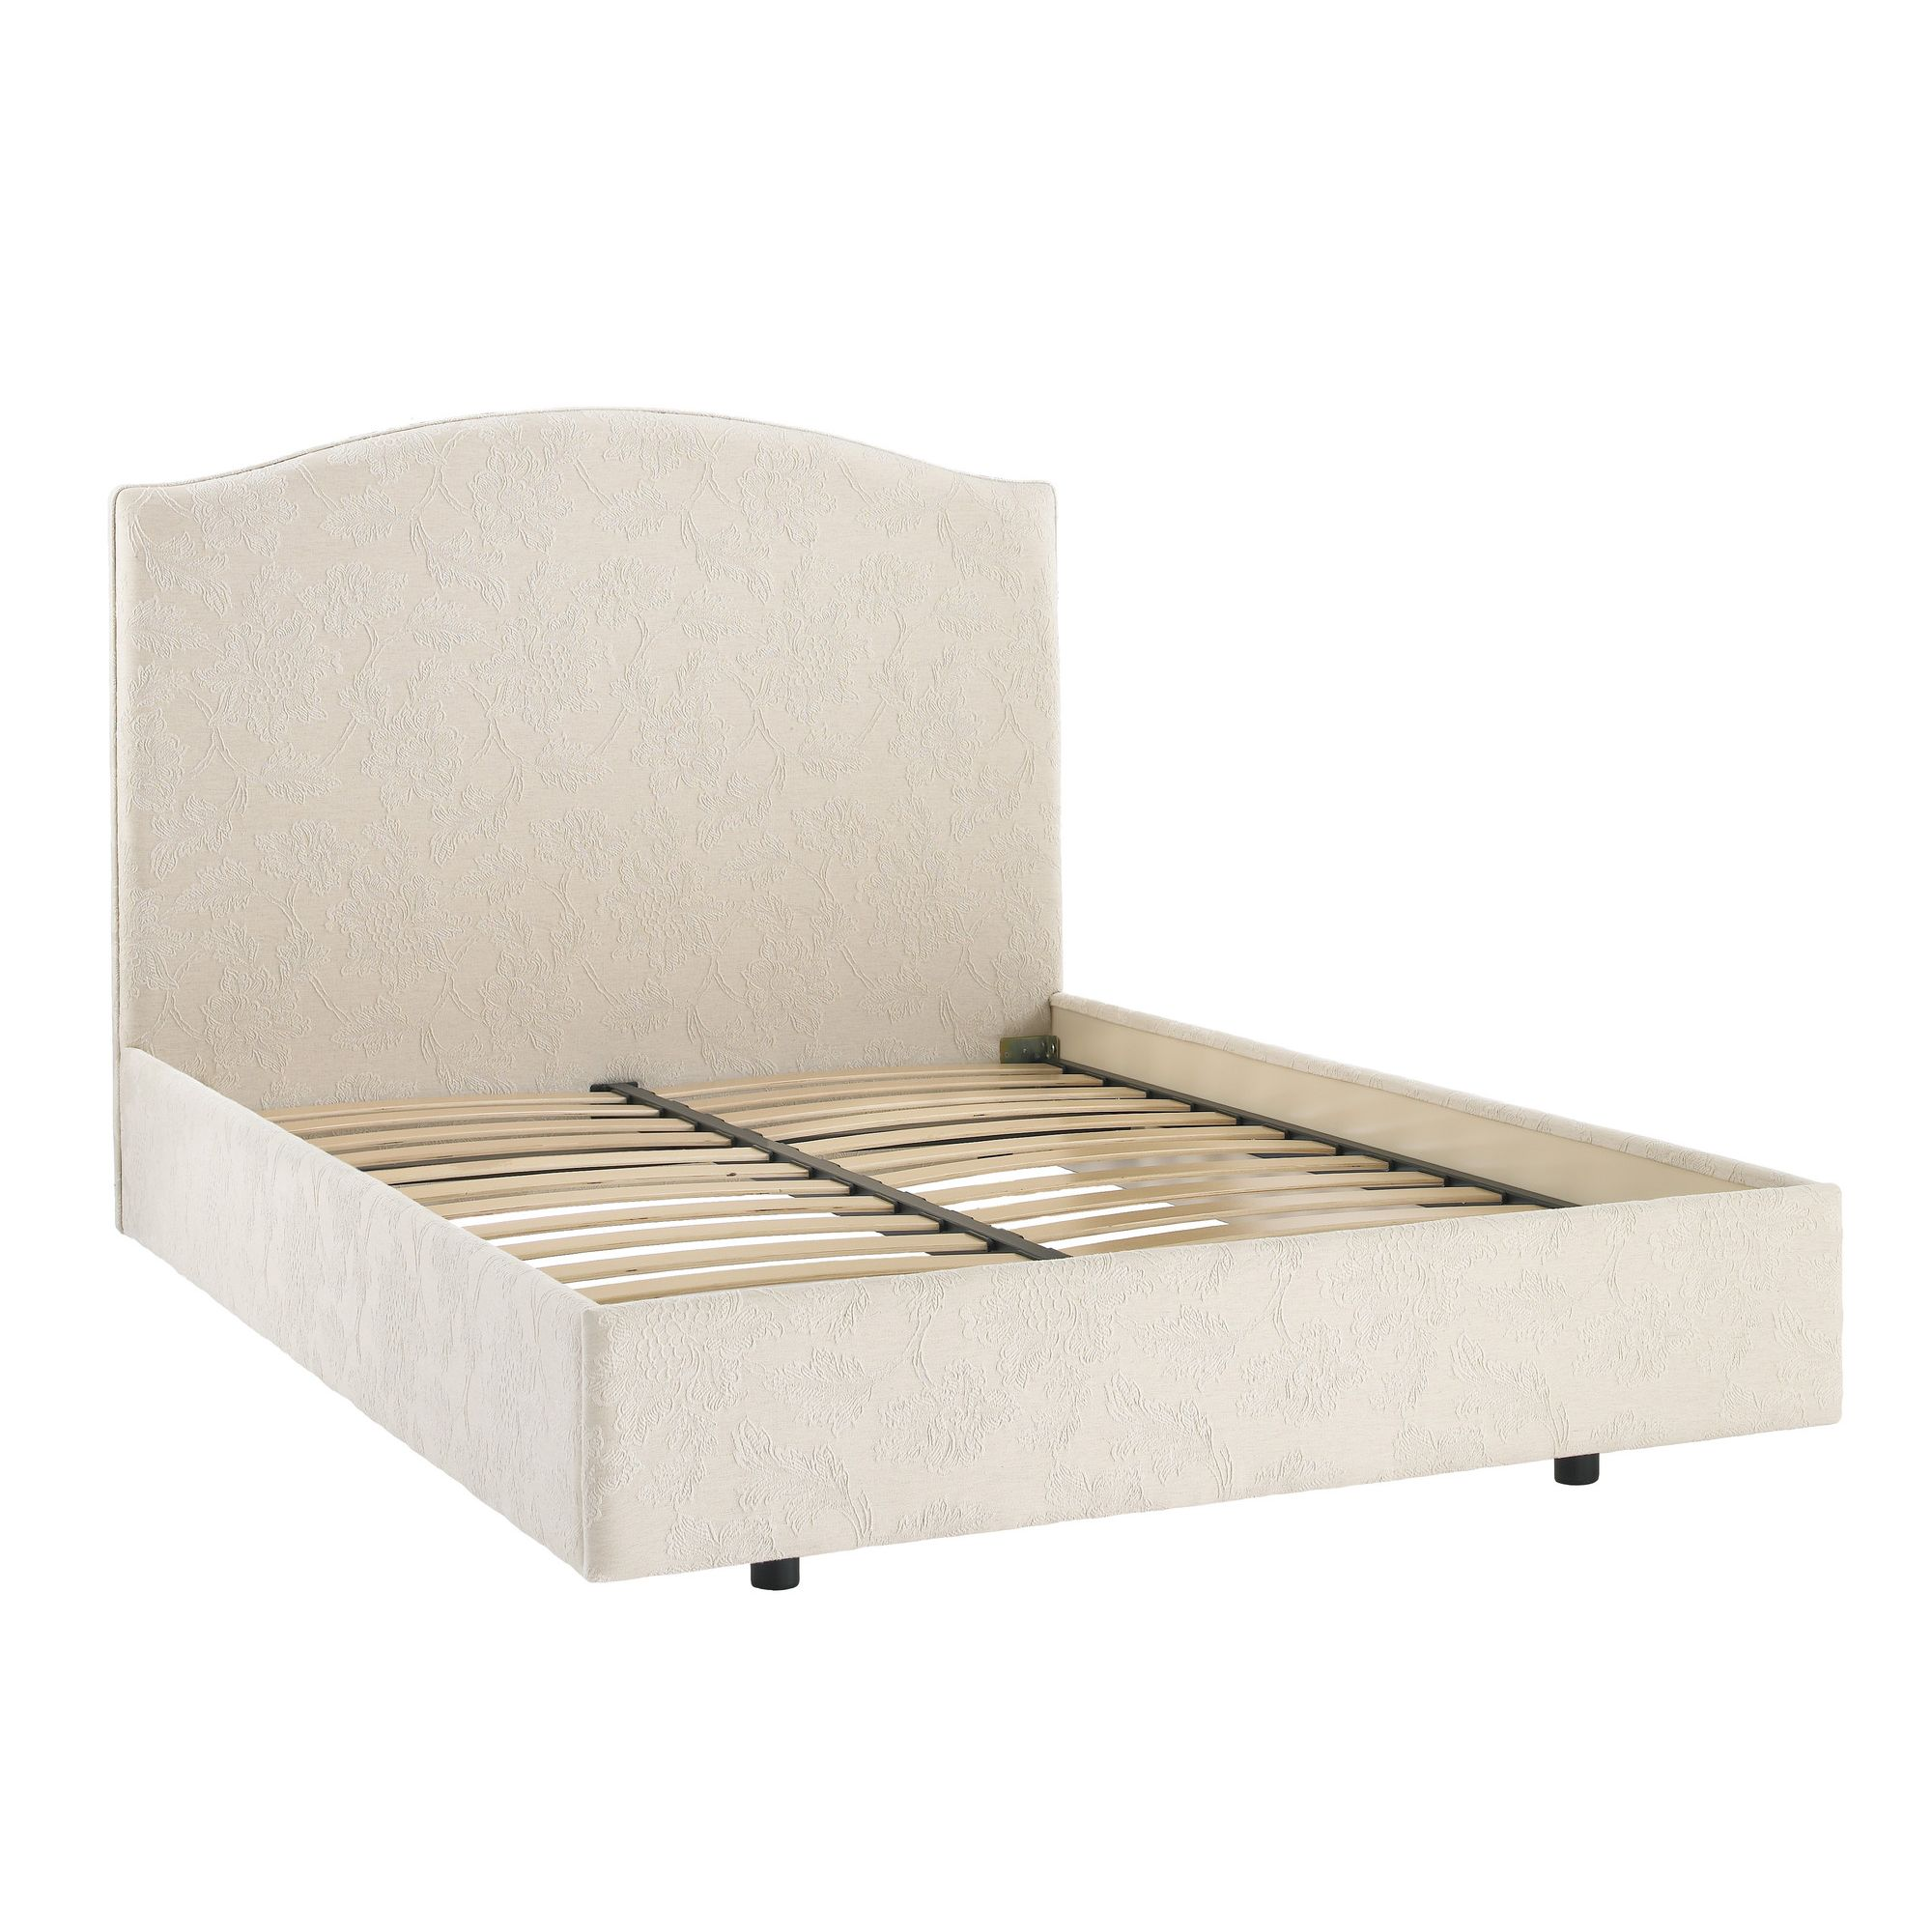 Swanglen Nice Ottoman Bedstead - Double / Chelsea Almond at Tesco Direct